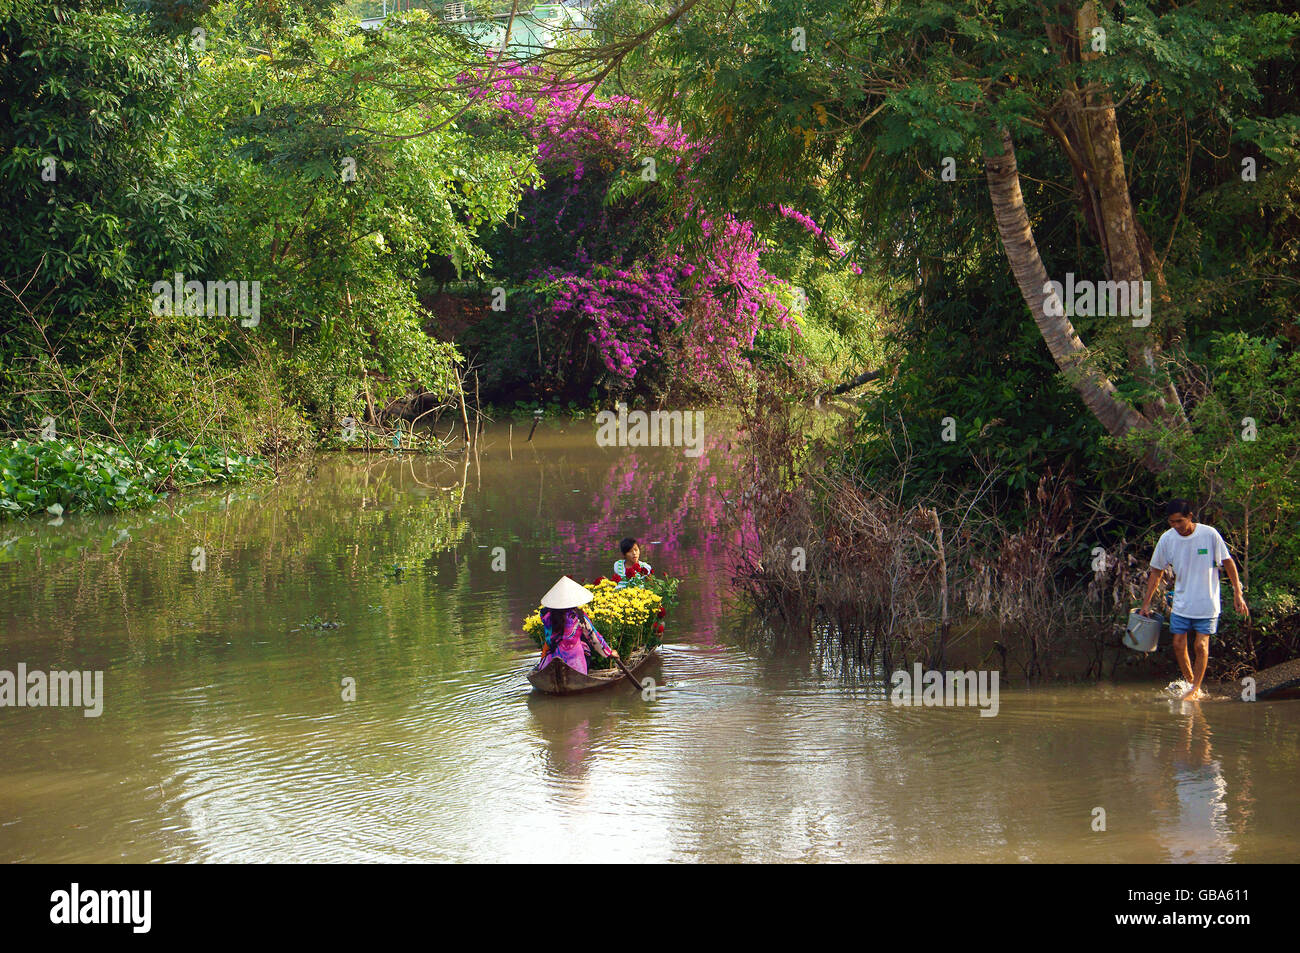 Spring come, women and children rowing the rowboat on river to carry beautiful flower  forTet - Stock Image